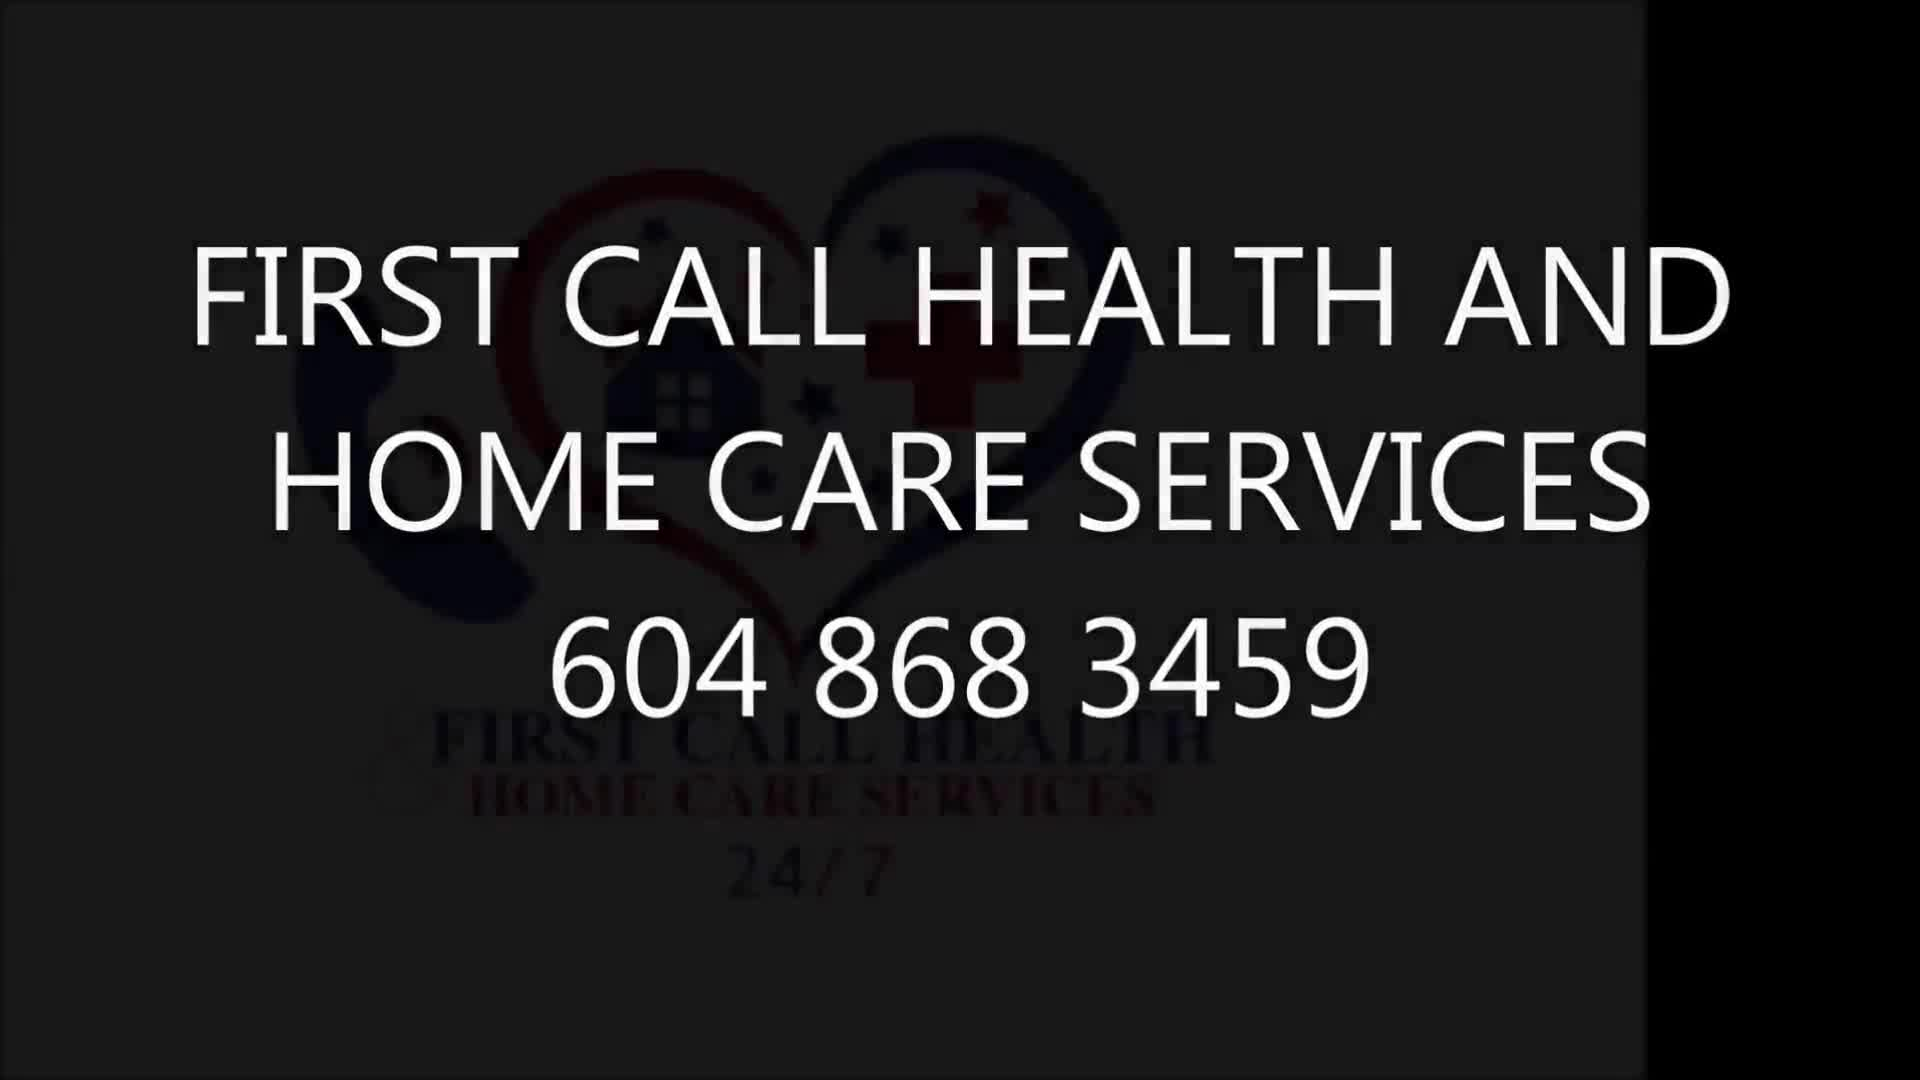 First Call Health and Home Care Services - Surrey, BC ...